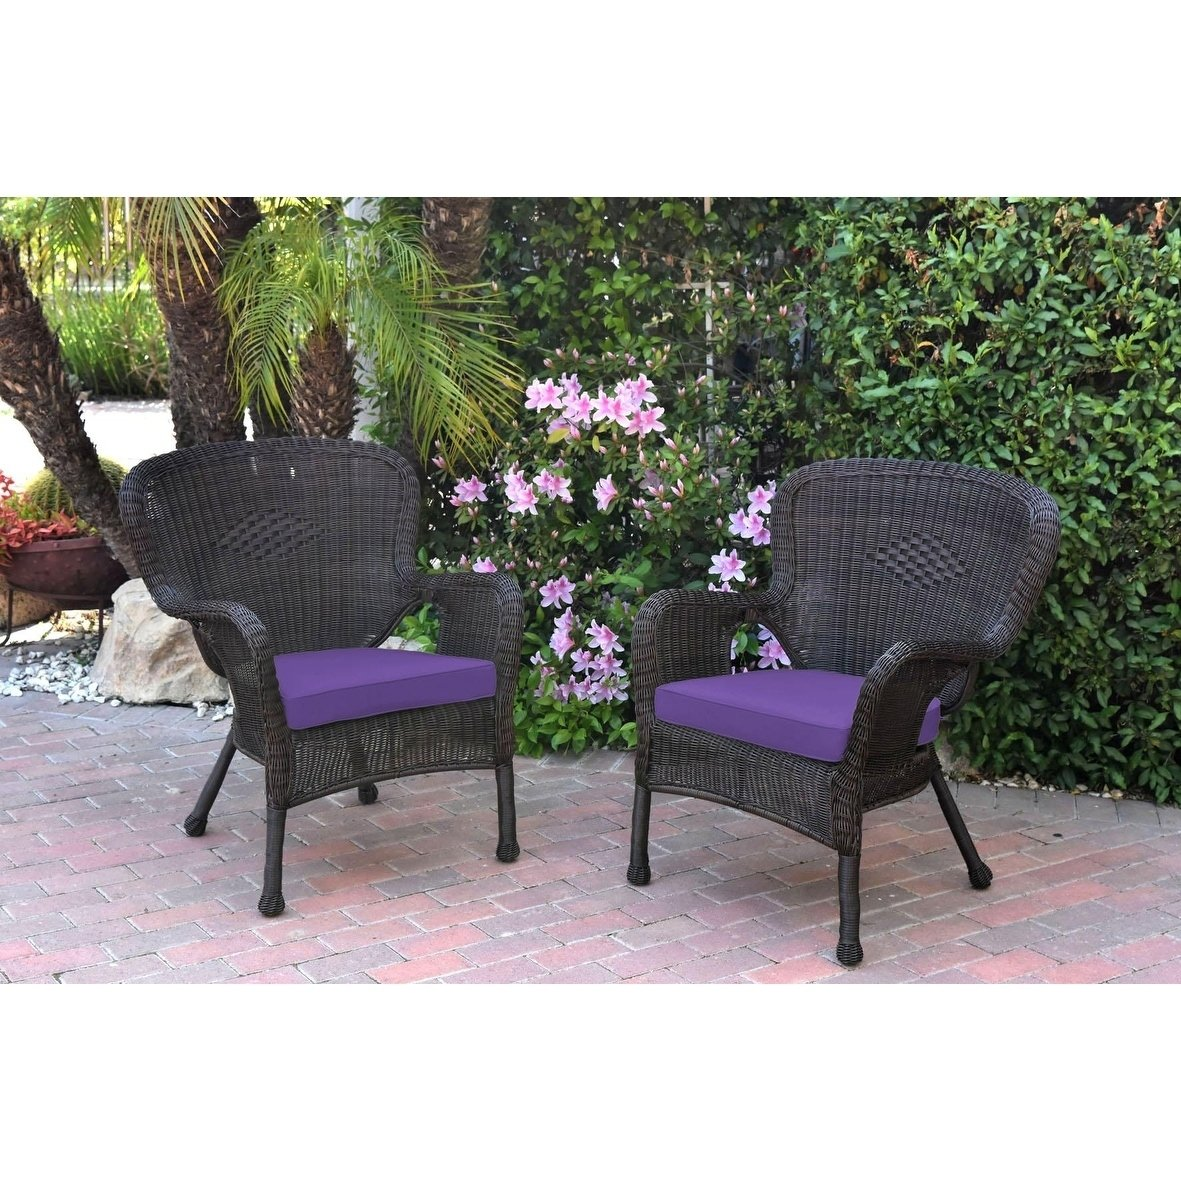 Jeco Windsor Resin Wicker Outdoor Patio Arm Chair - Set of 2